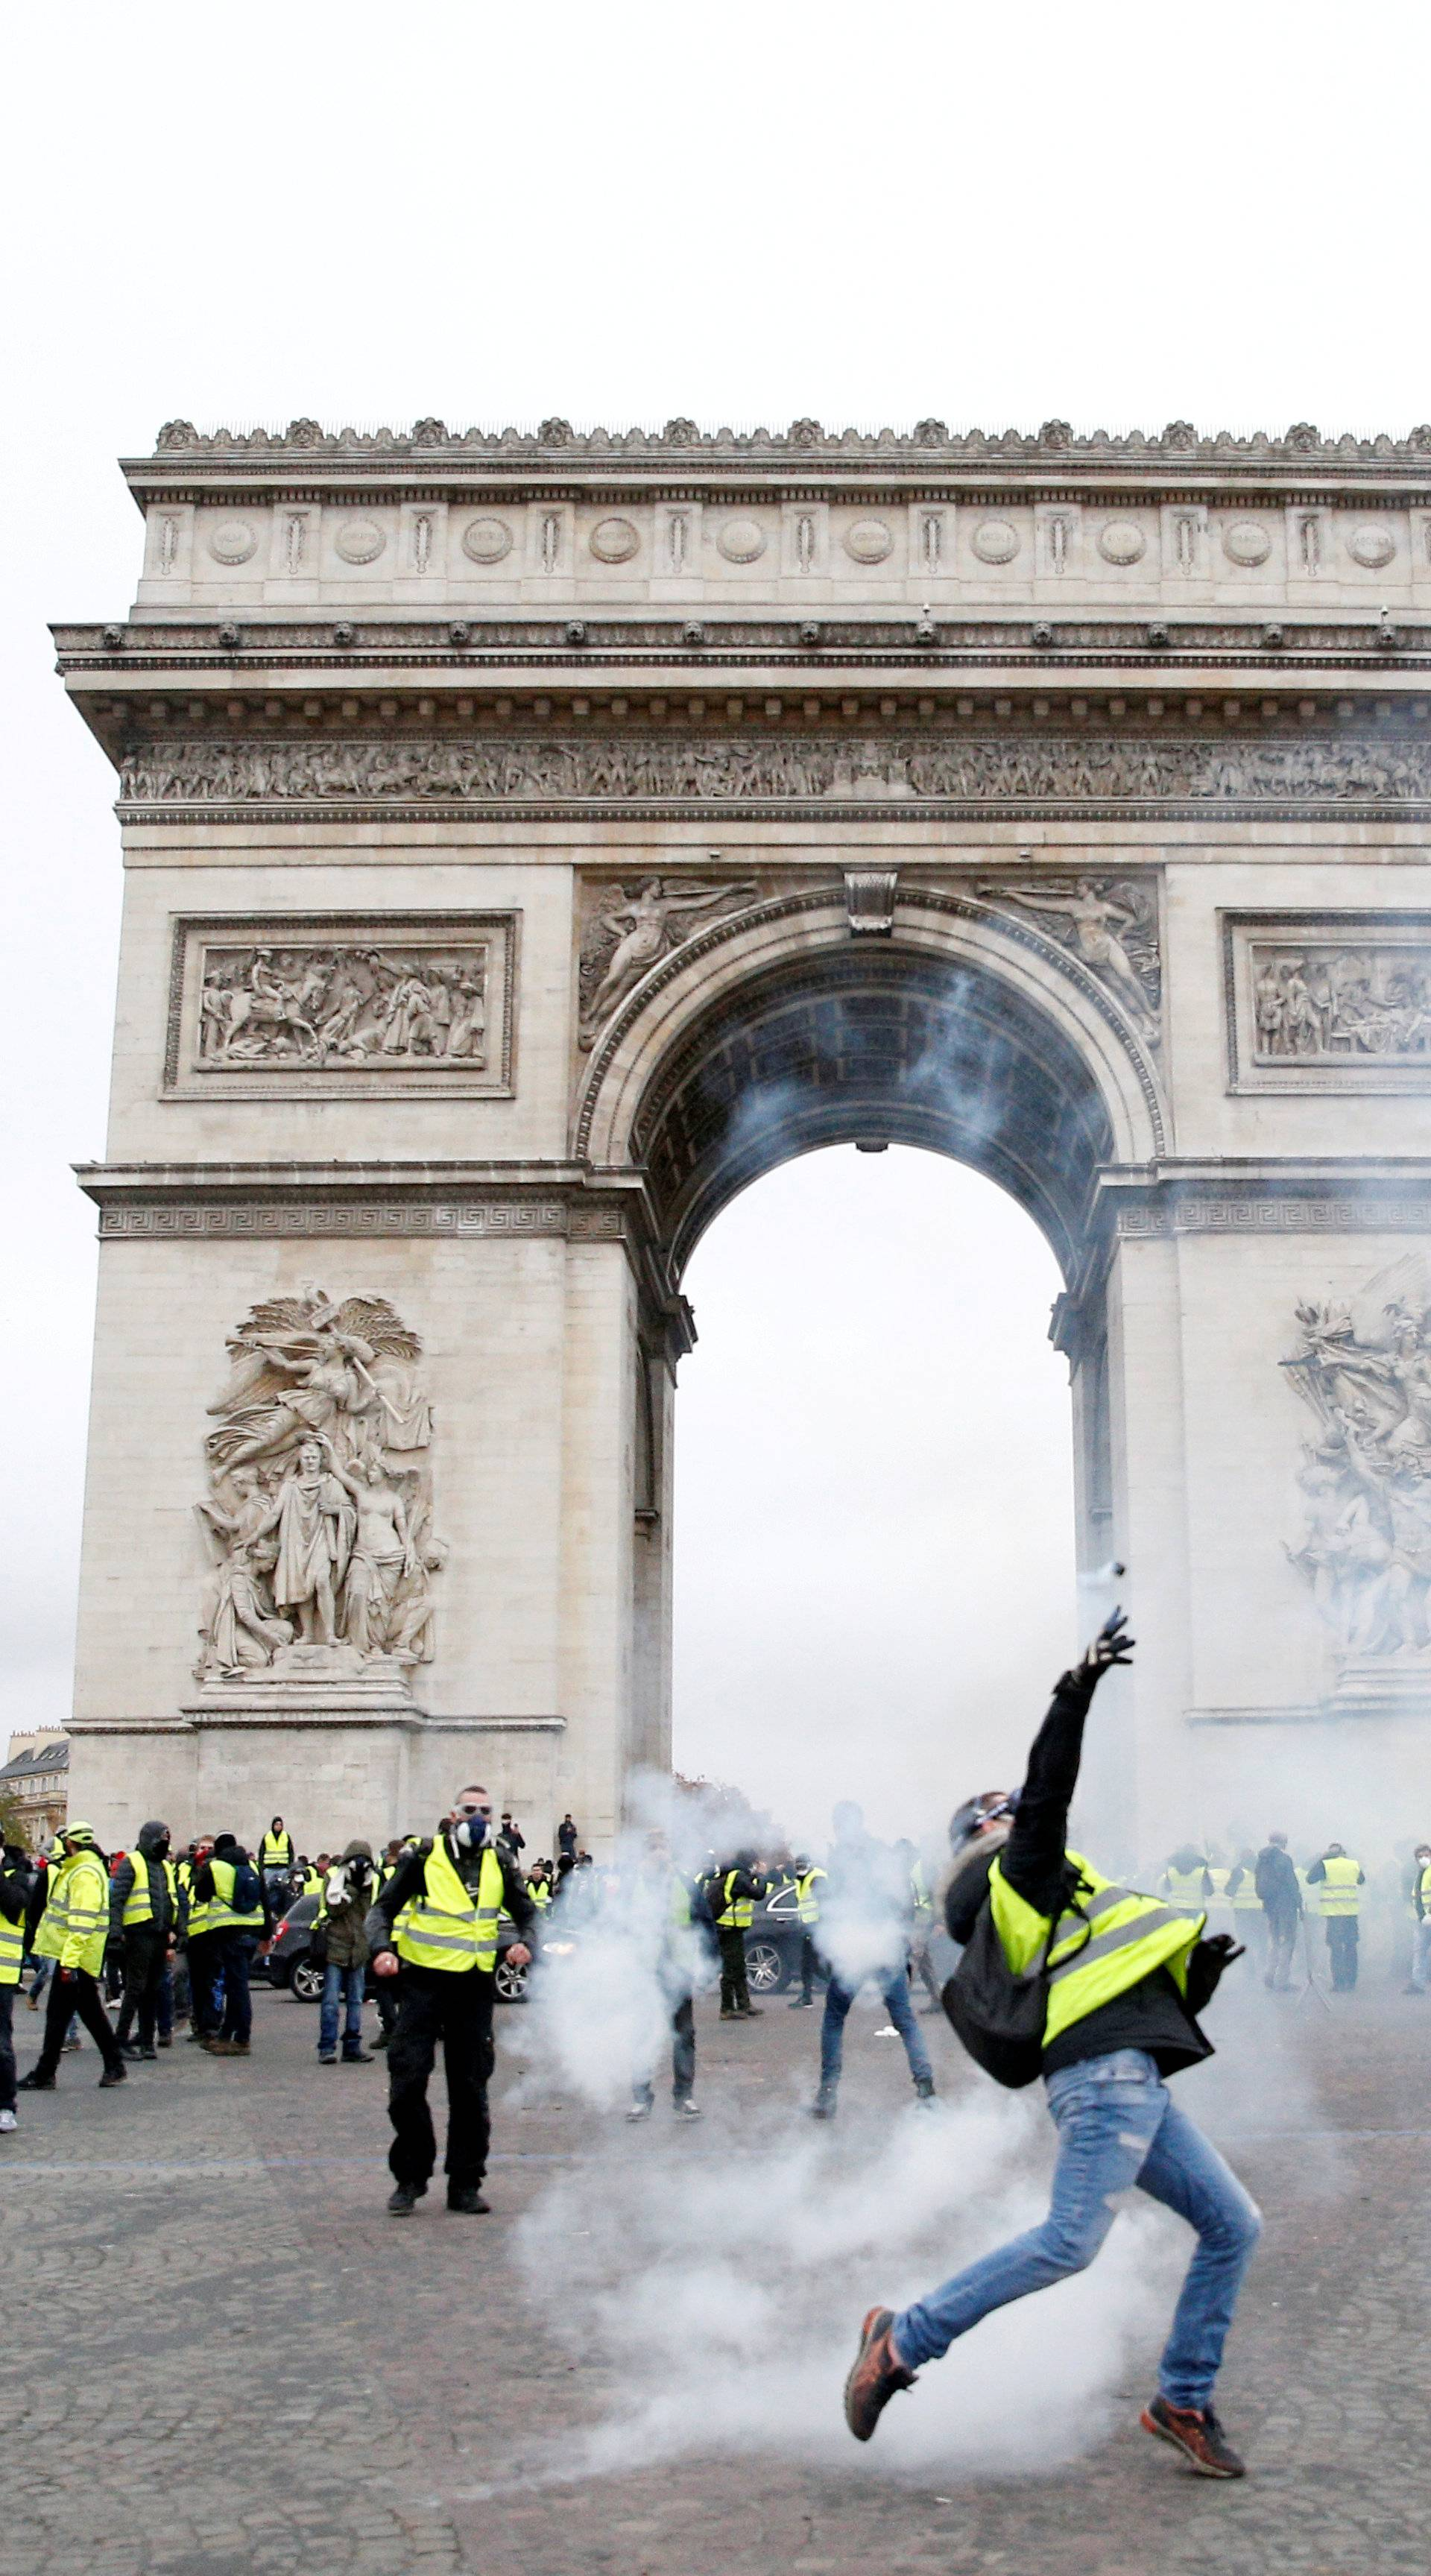 Tear gas floats in the air near the Arc de Triomphe as protesters wearing yellow vests, a symbol of a French drivers' protest against higher diesel taxes, demonstrate in Paris